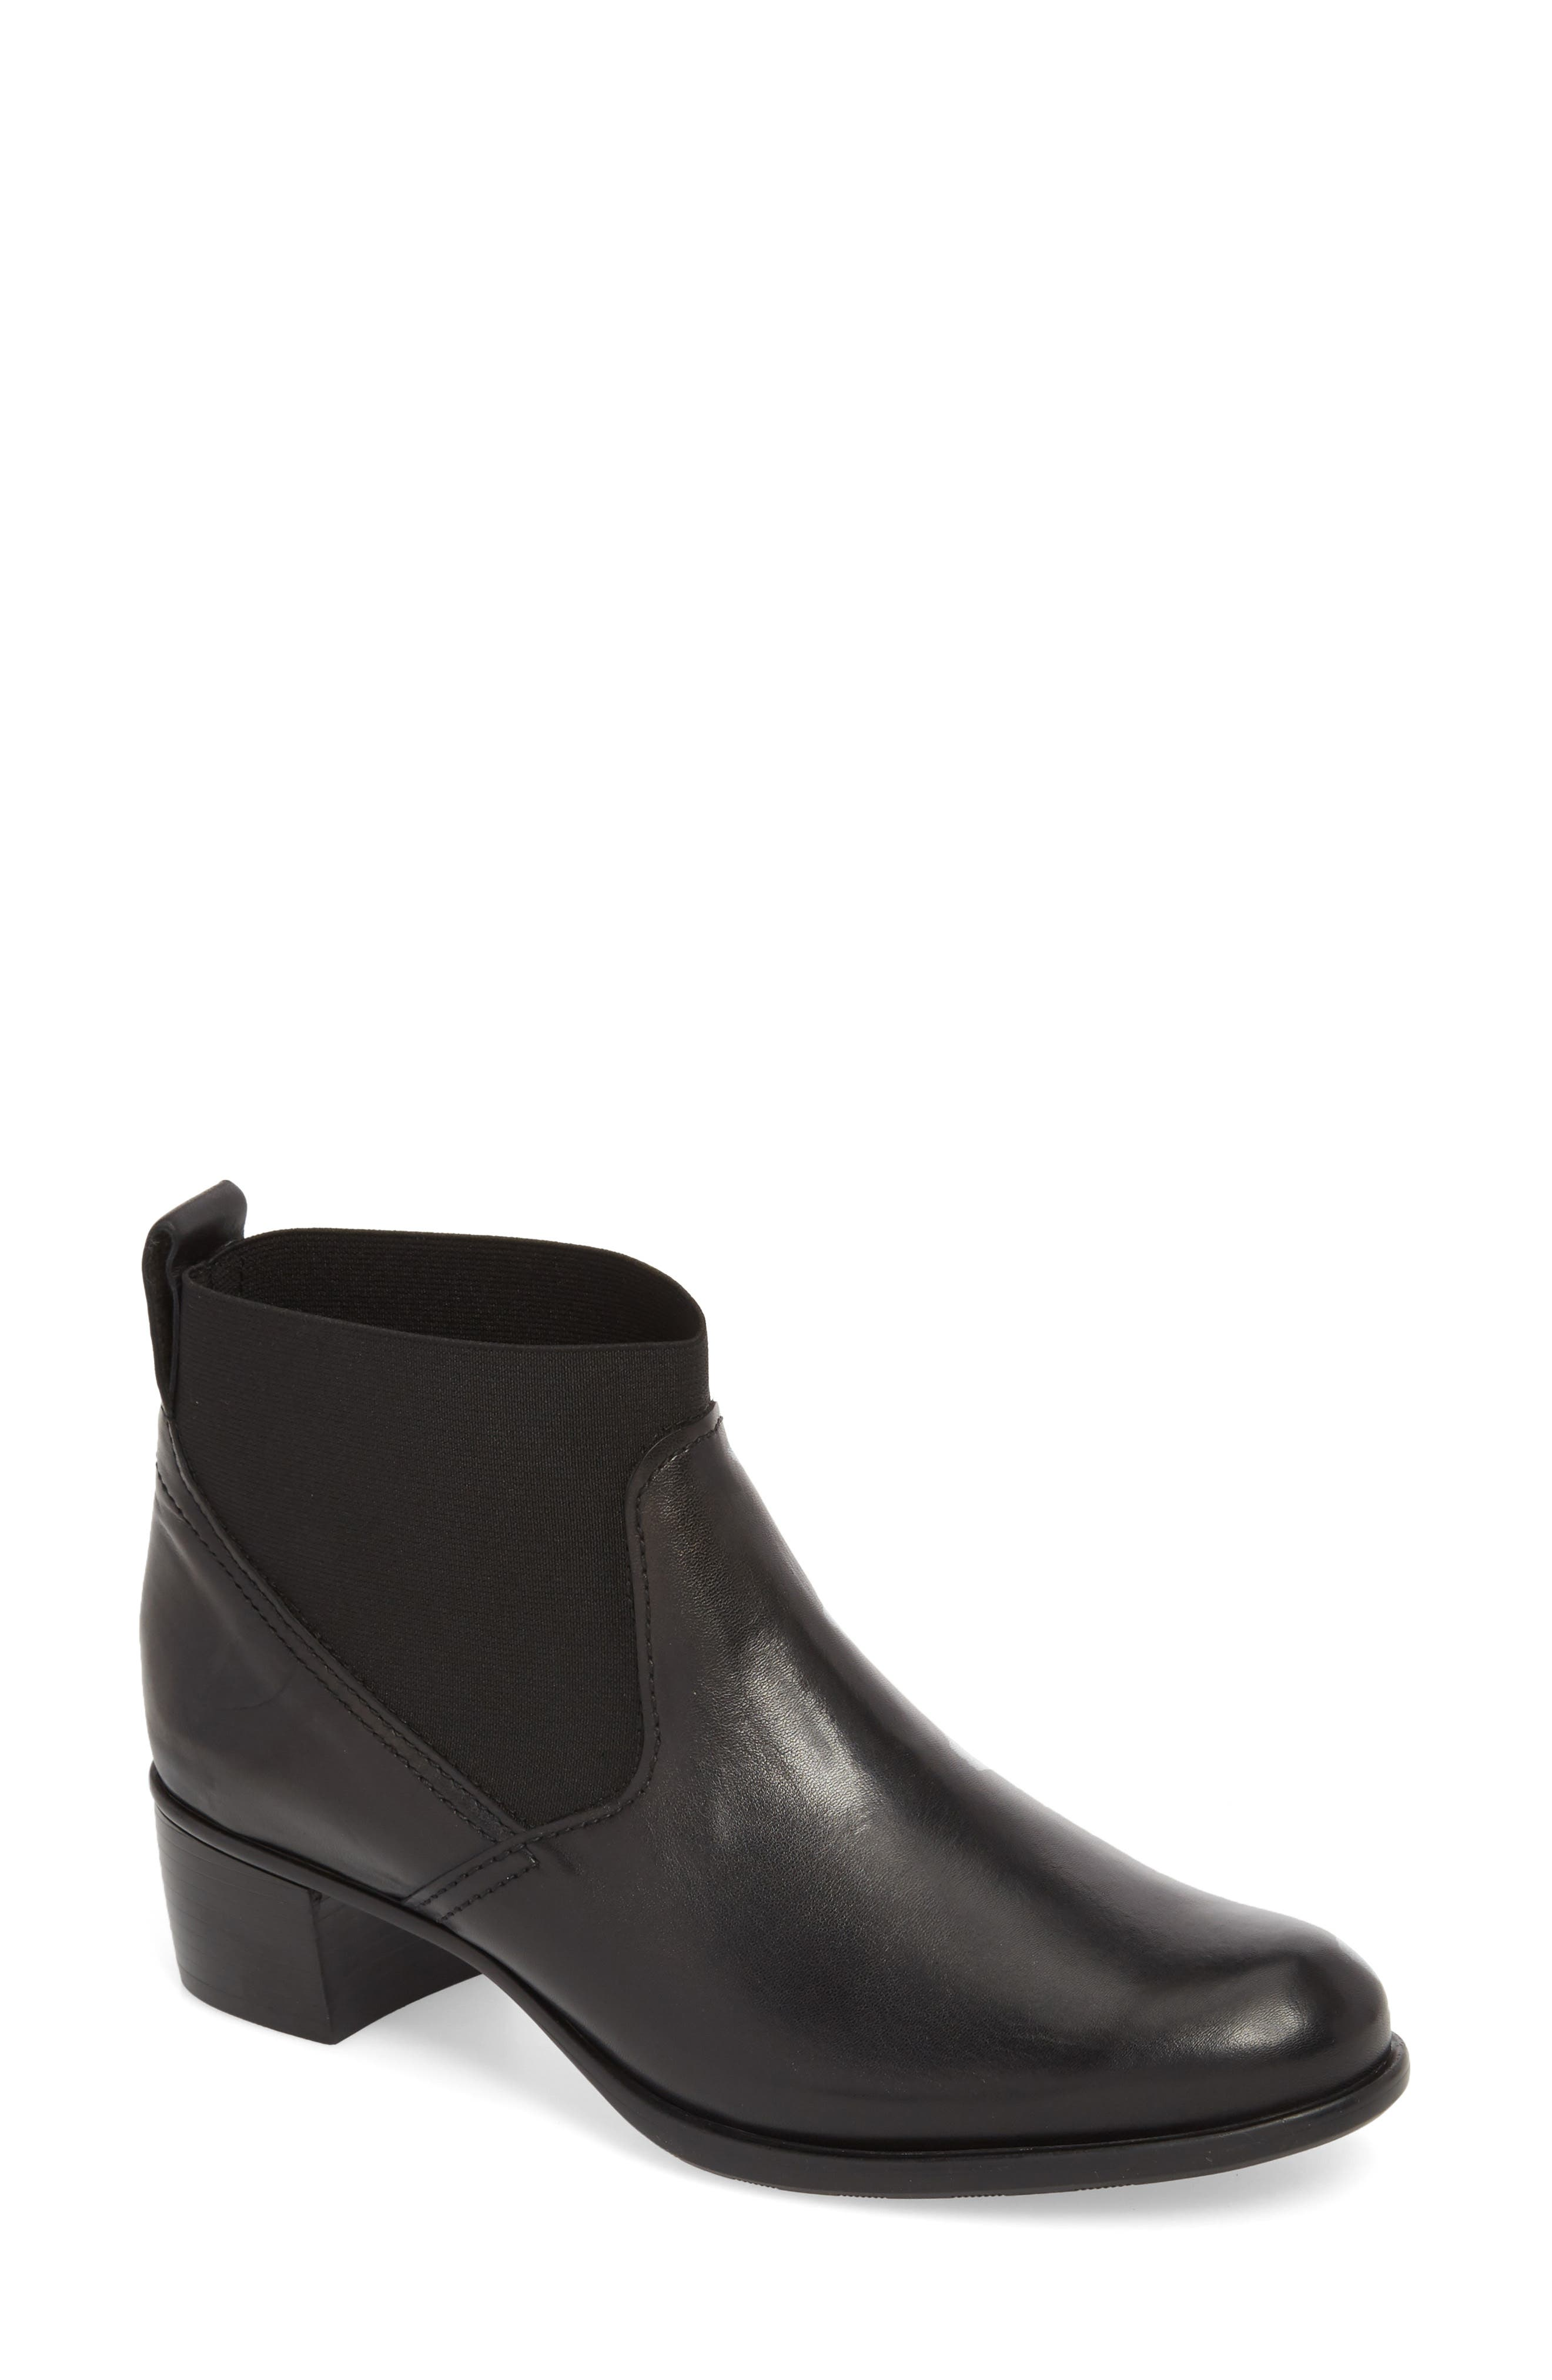 Ana Bootie,                             Main thumbnail 1, color,                             BLACK LEATHER